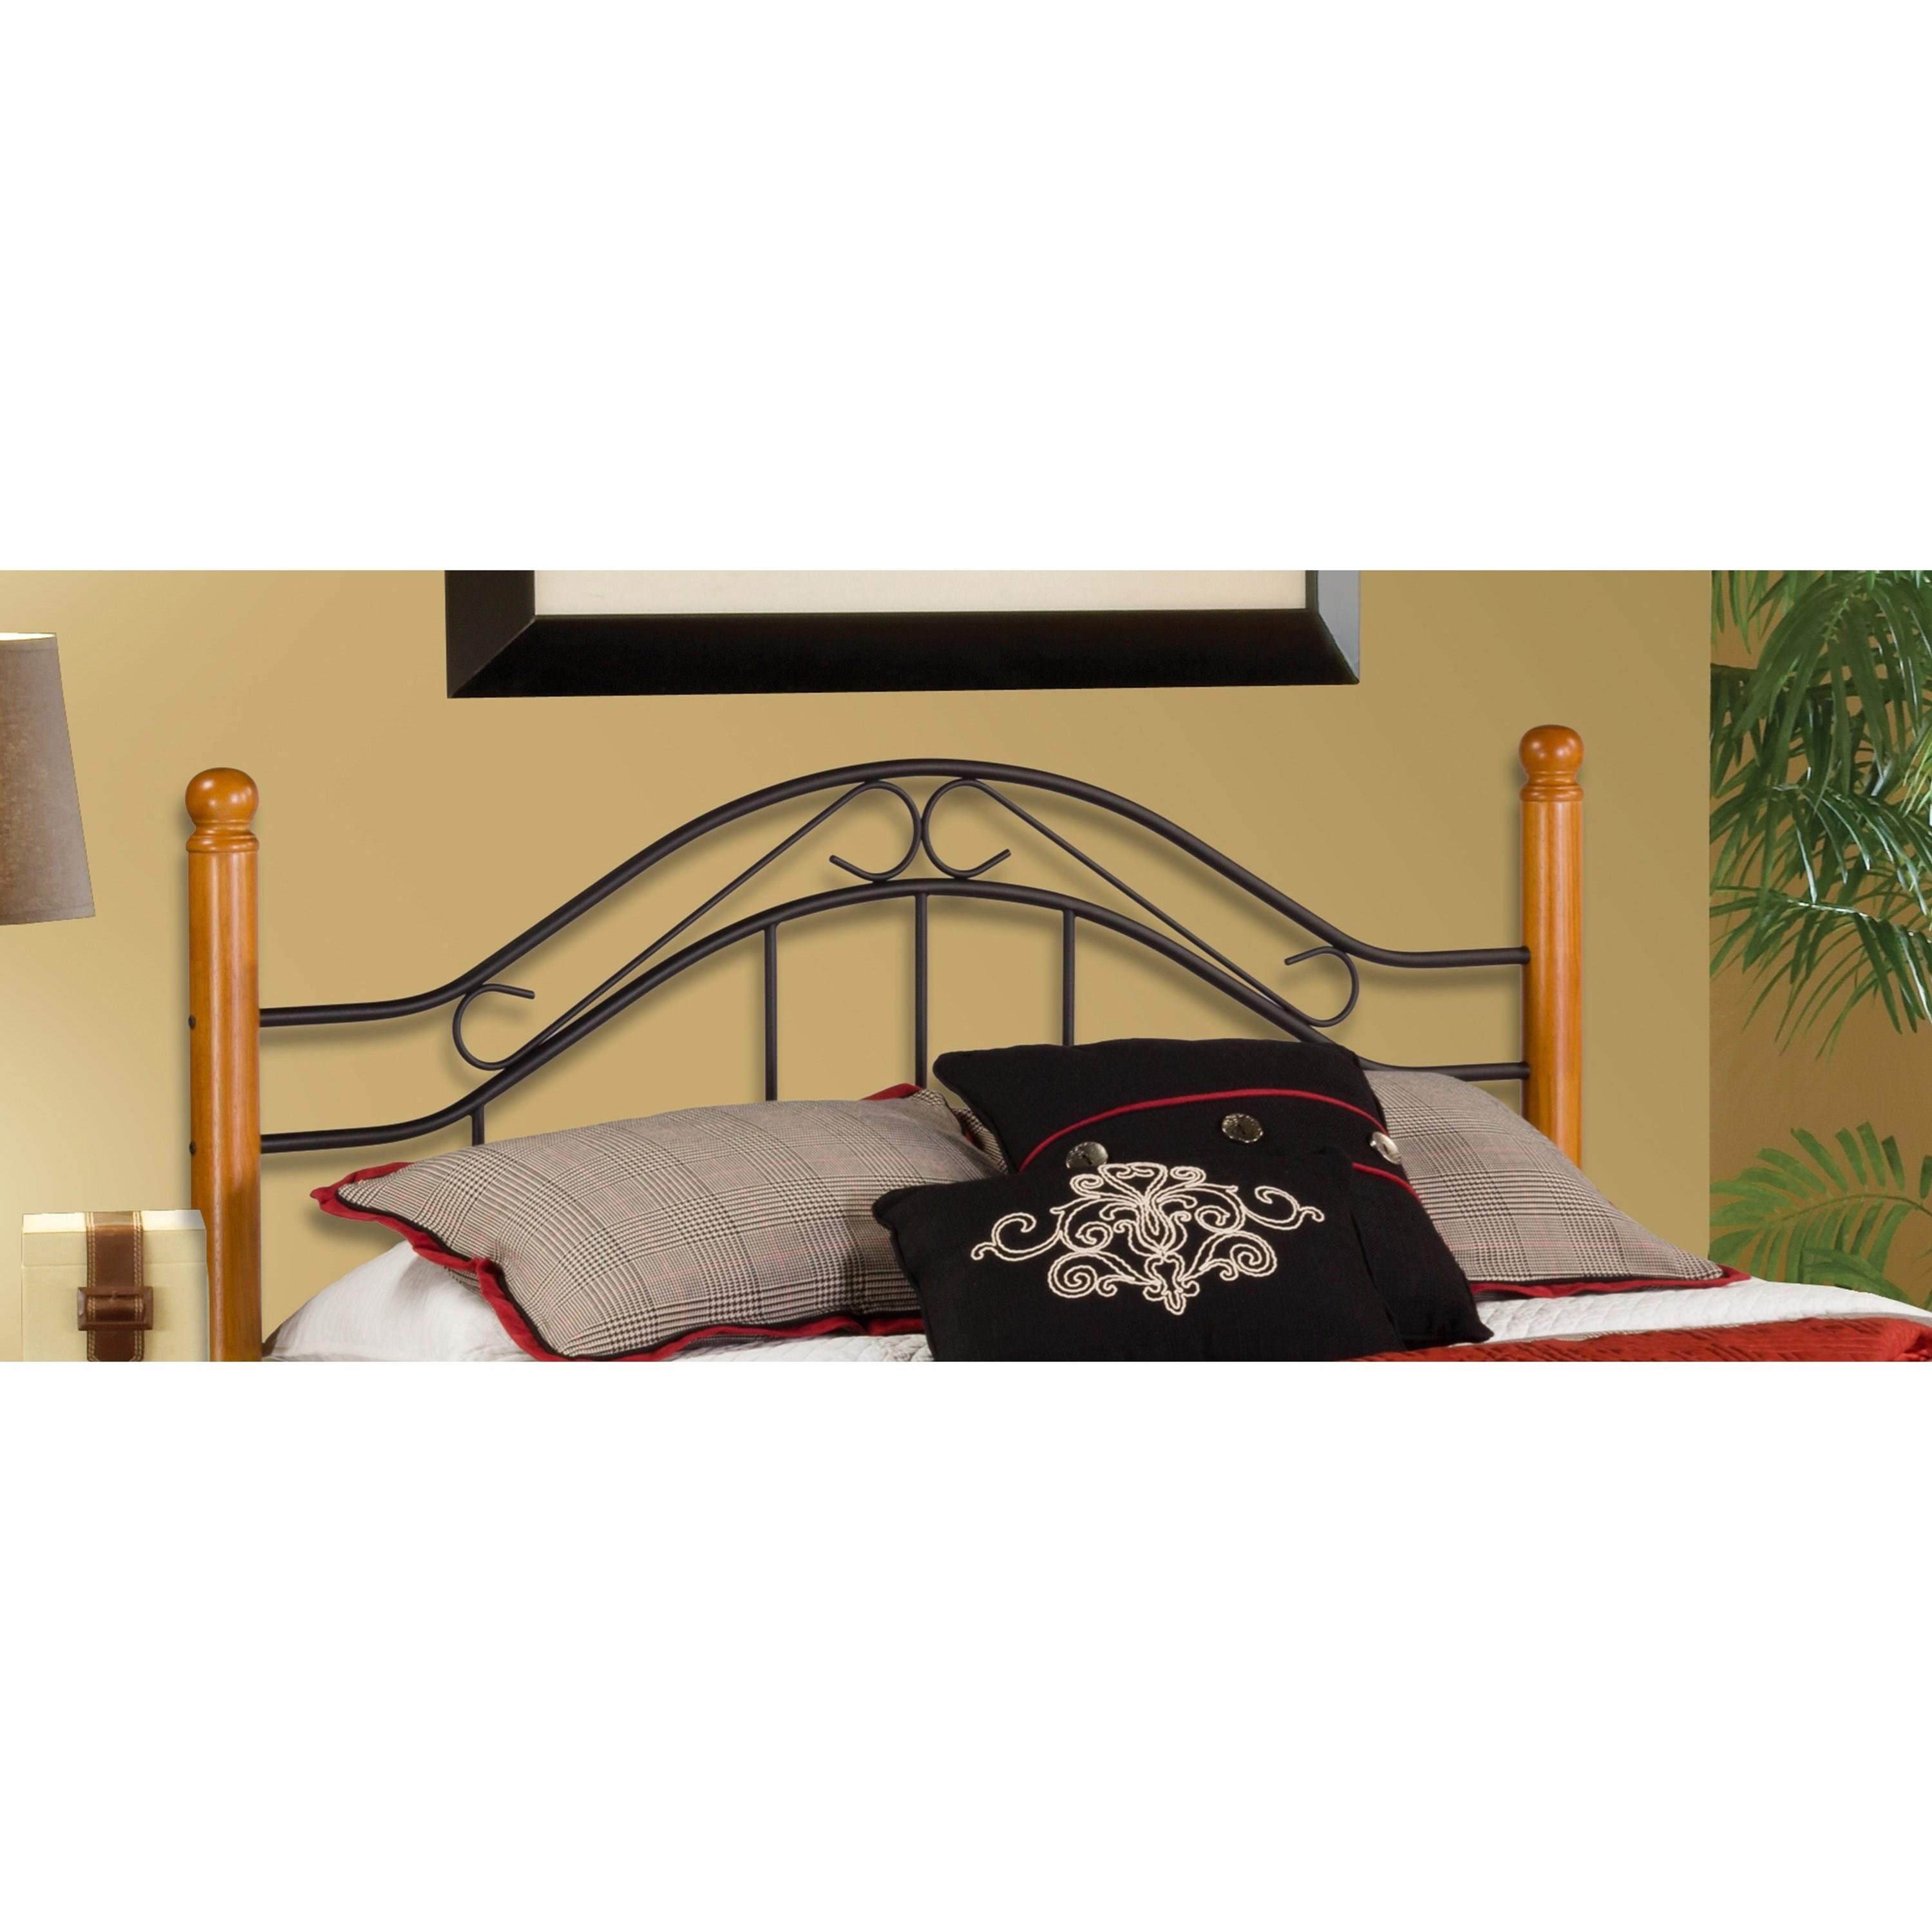 Wood Beds Full/Queen Headboard at Sadler's Home Furnishings